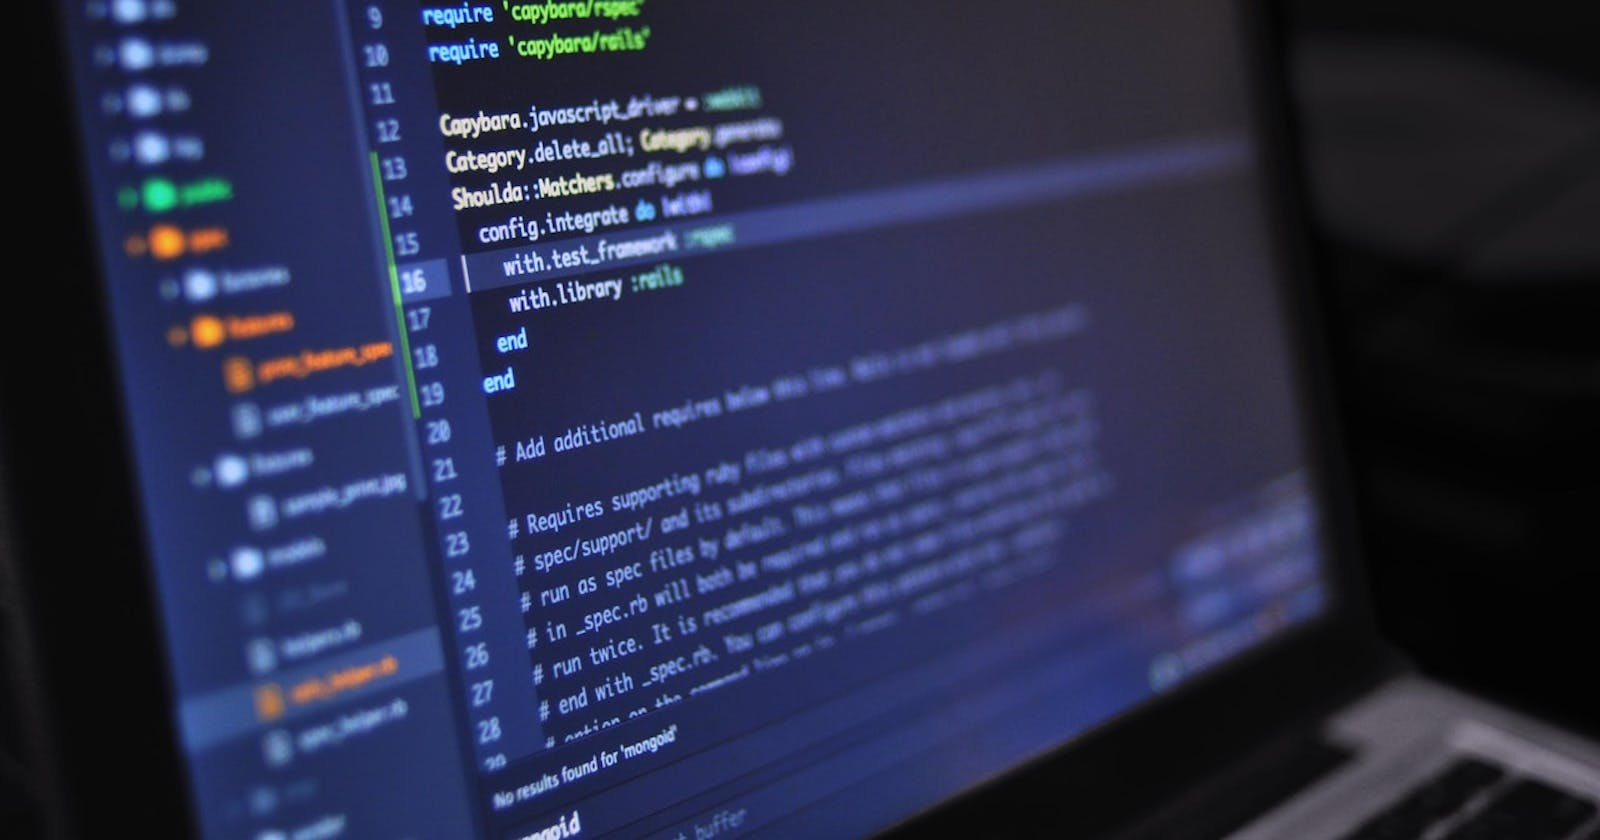 How to create a Web-Server with core inbuild HTTP node module | Must know before learning ExpressJS